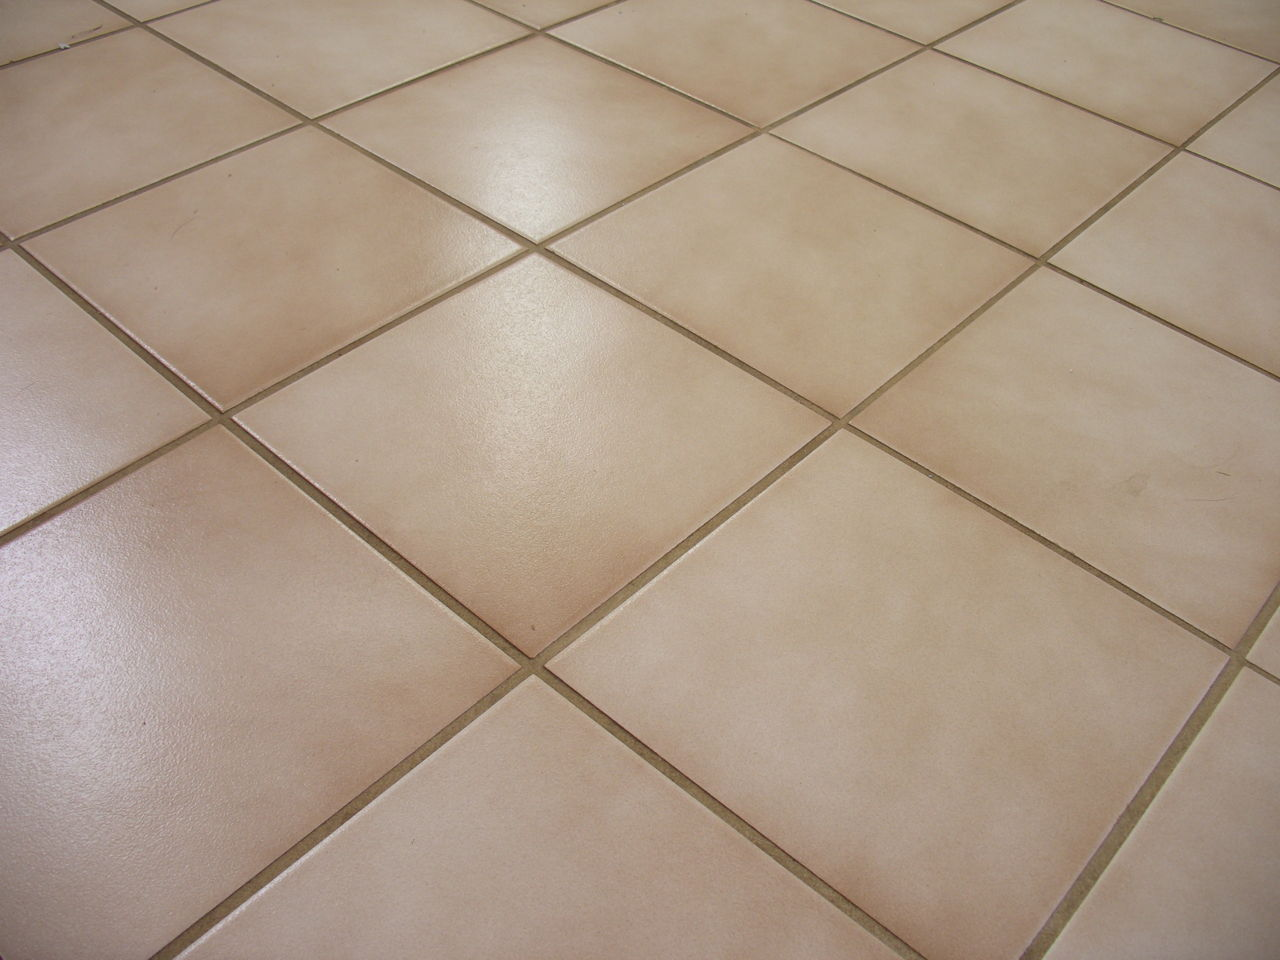 floor tile patterns can enhance the look of any room. however, most of BZNRNWM